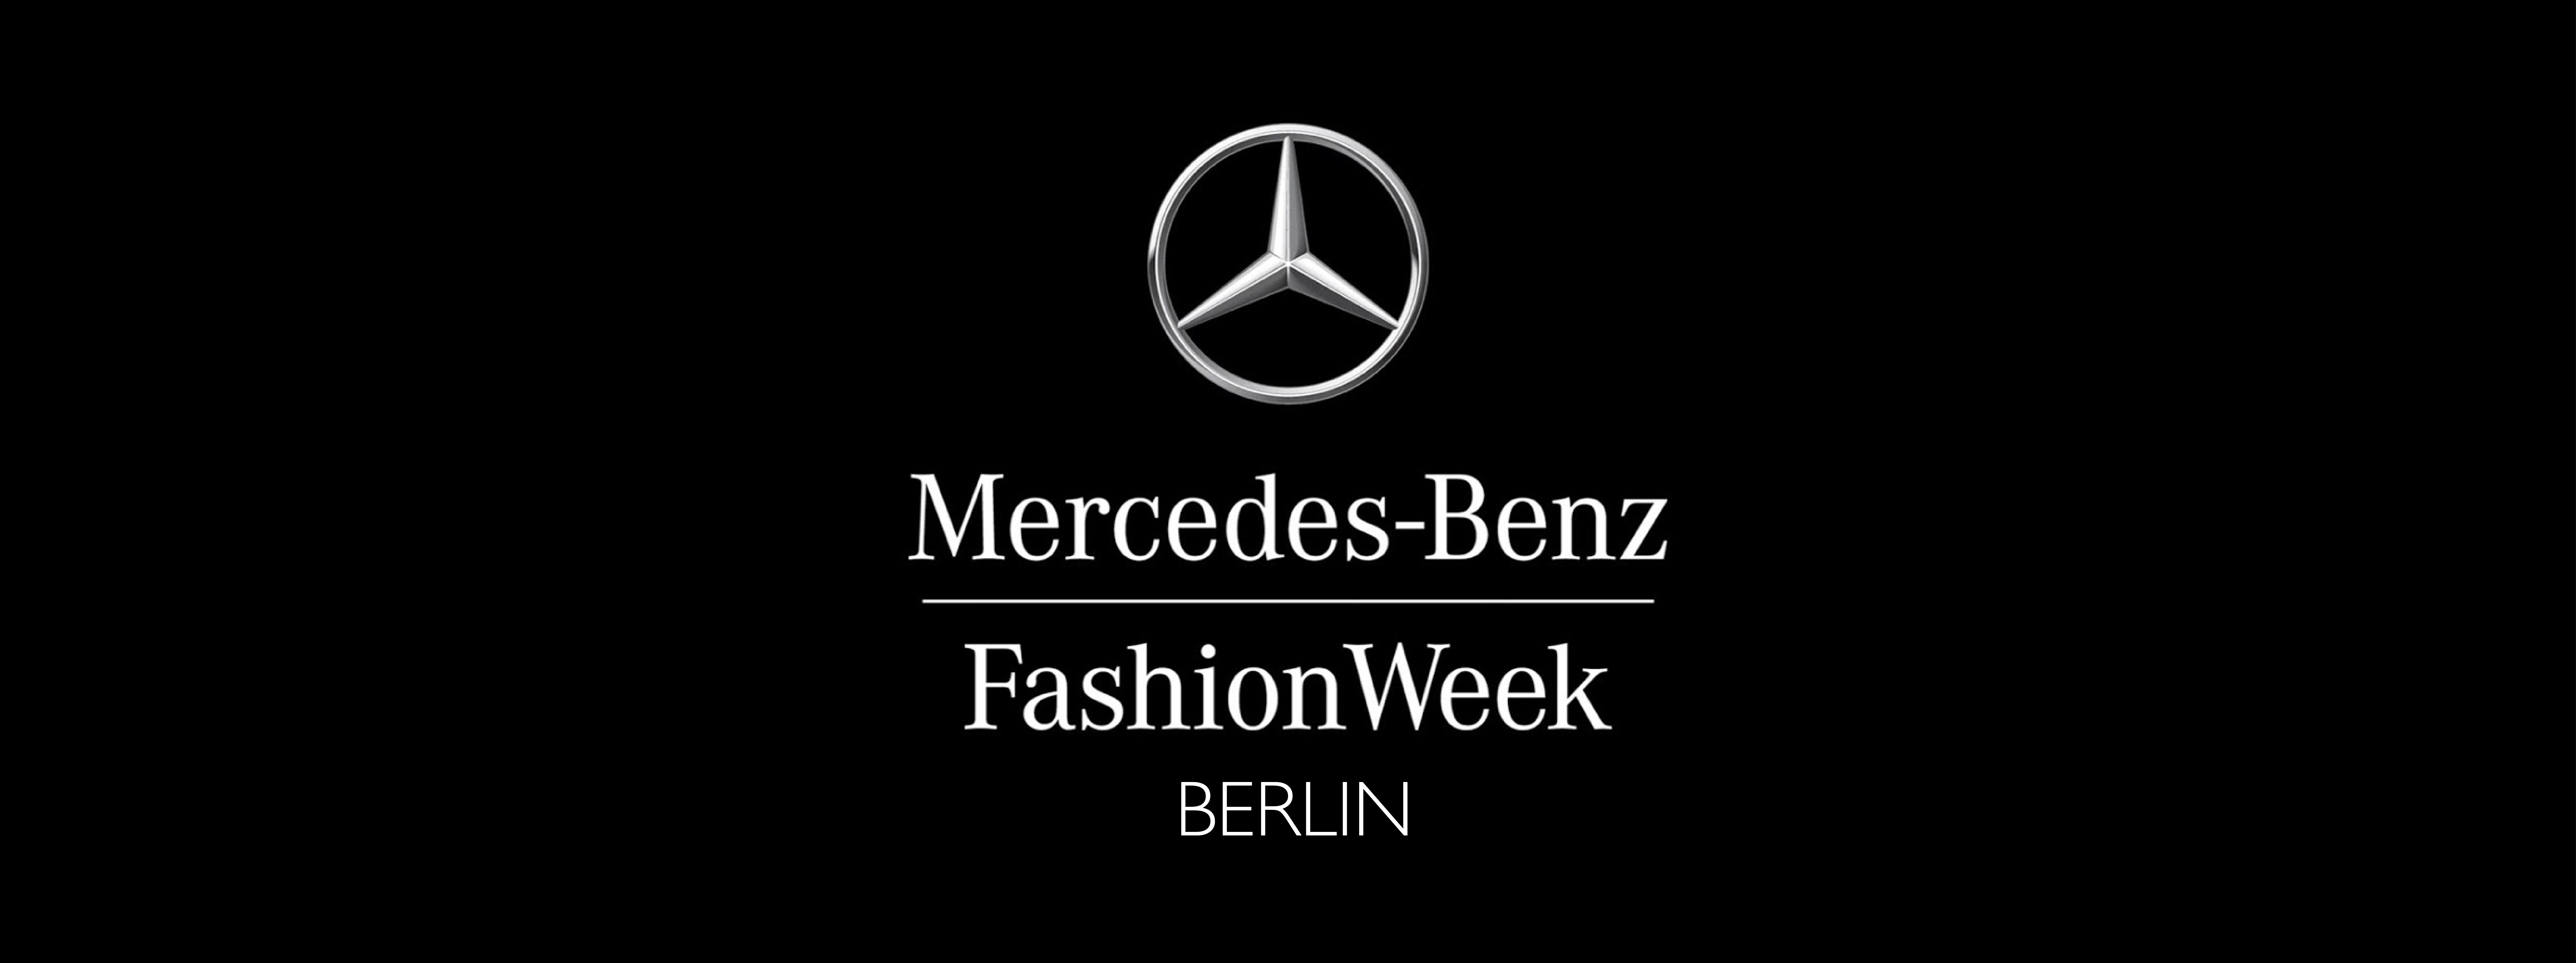 Mercedes Bens fashion week, Berlin